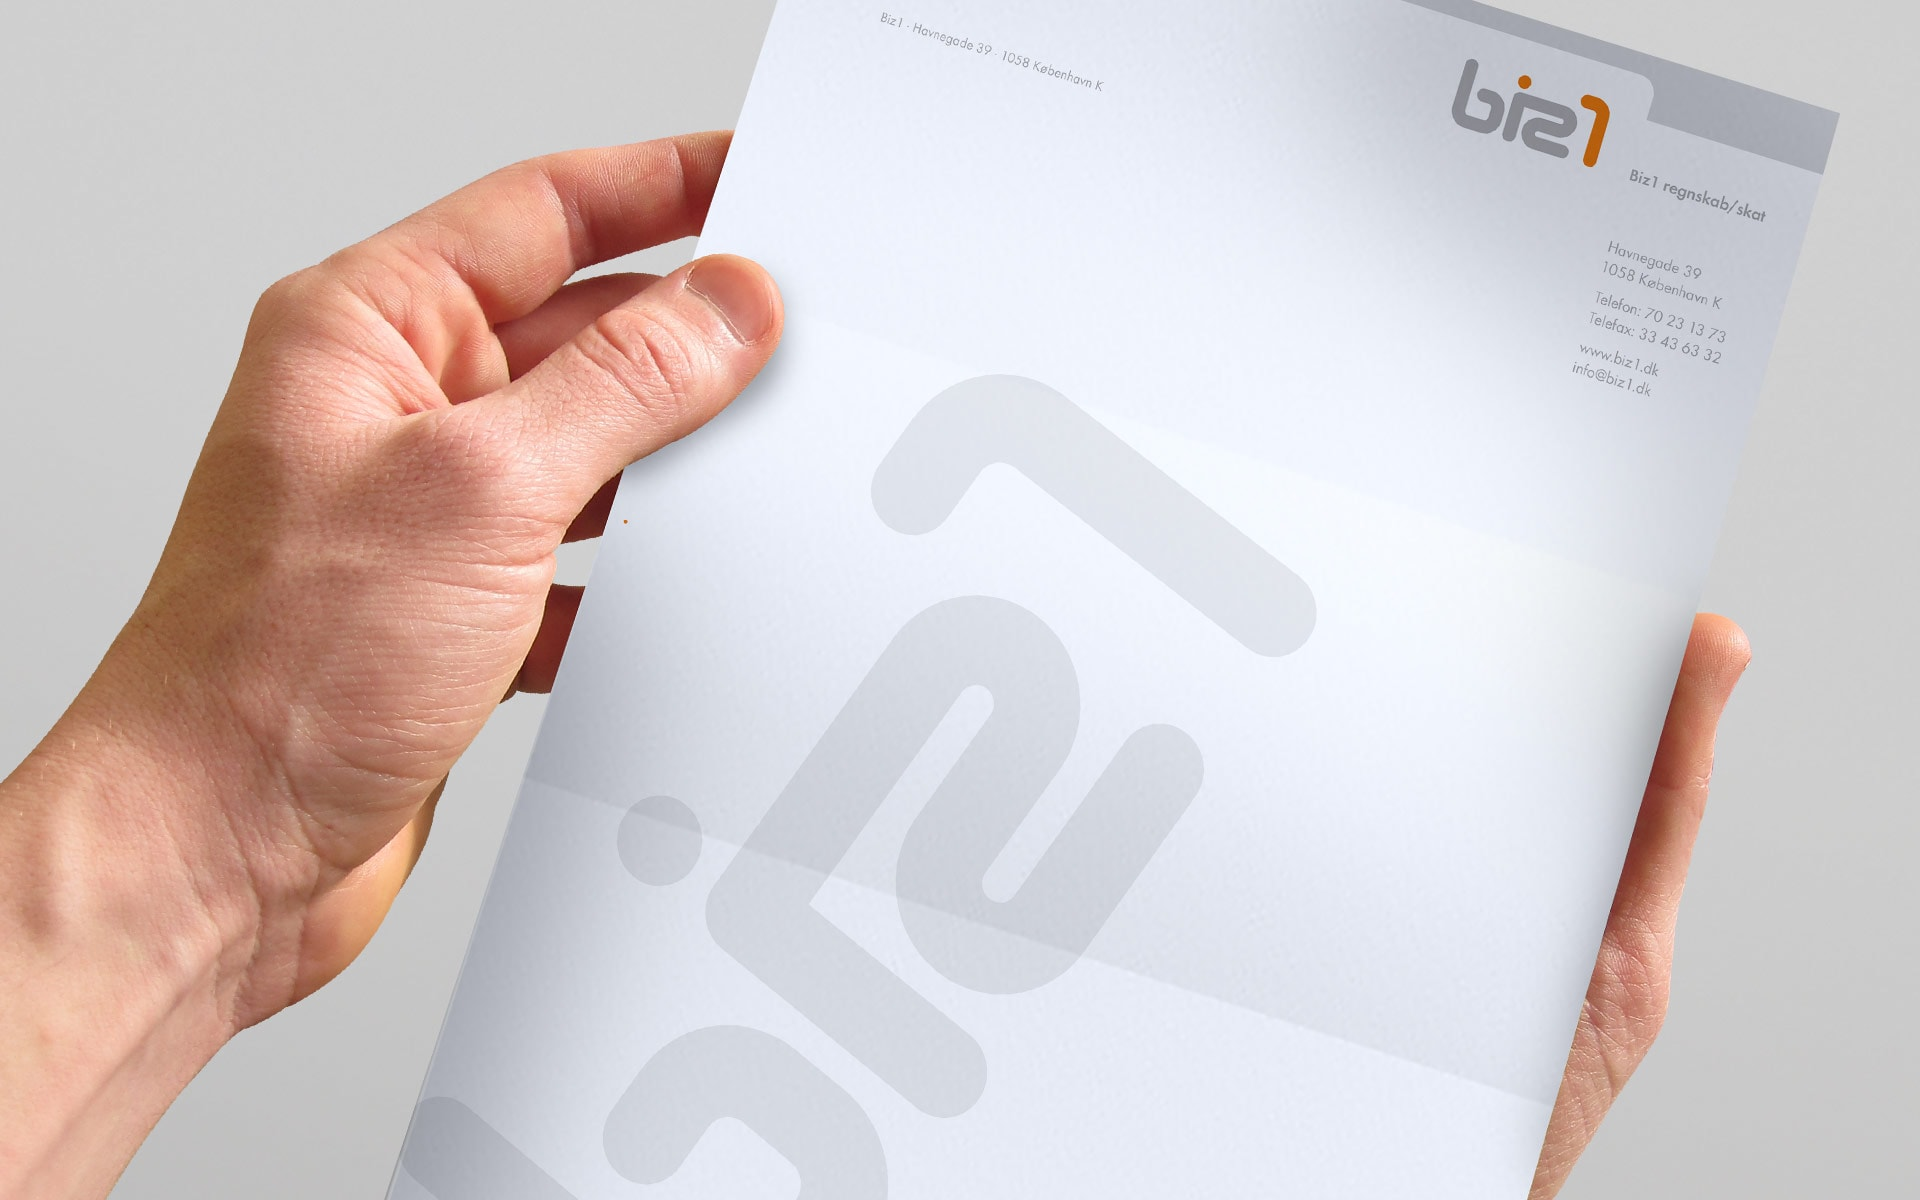 Briefbogen biz1 Corporate-Design